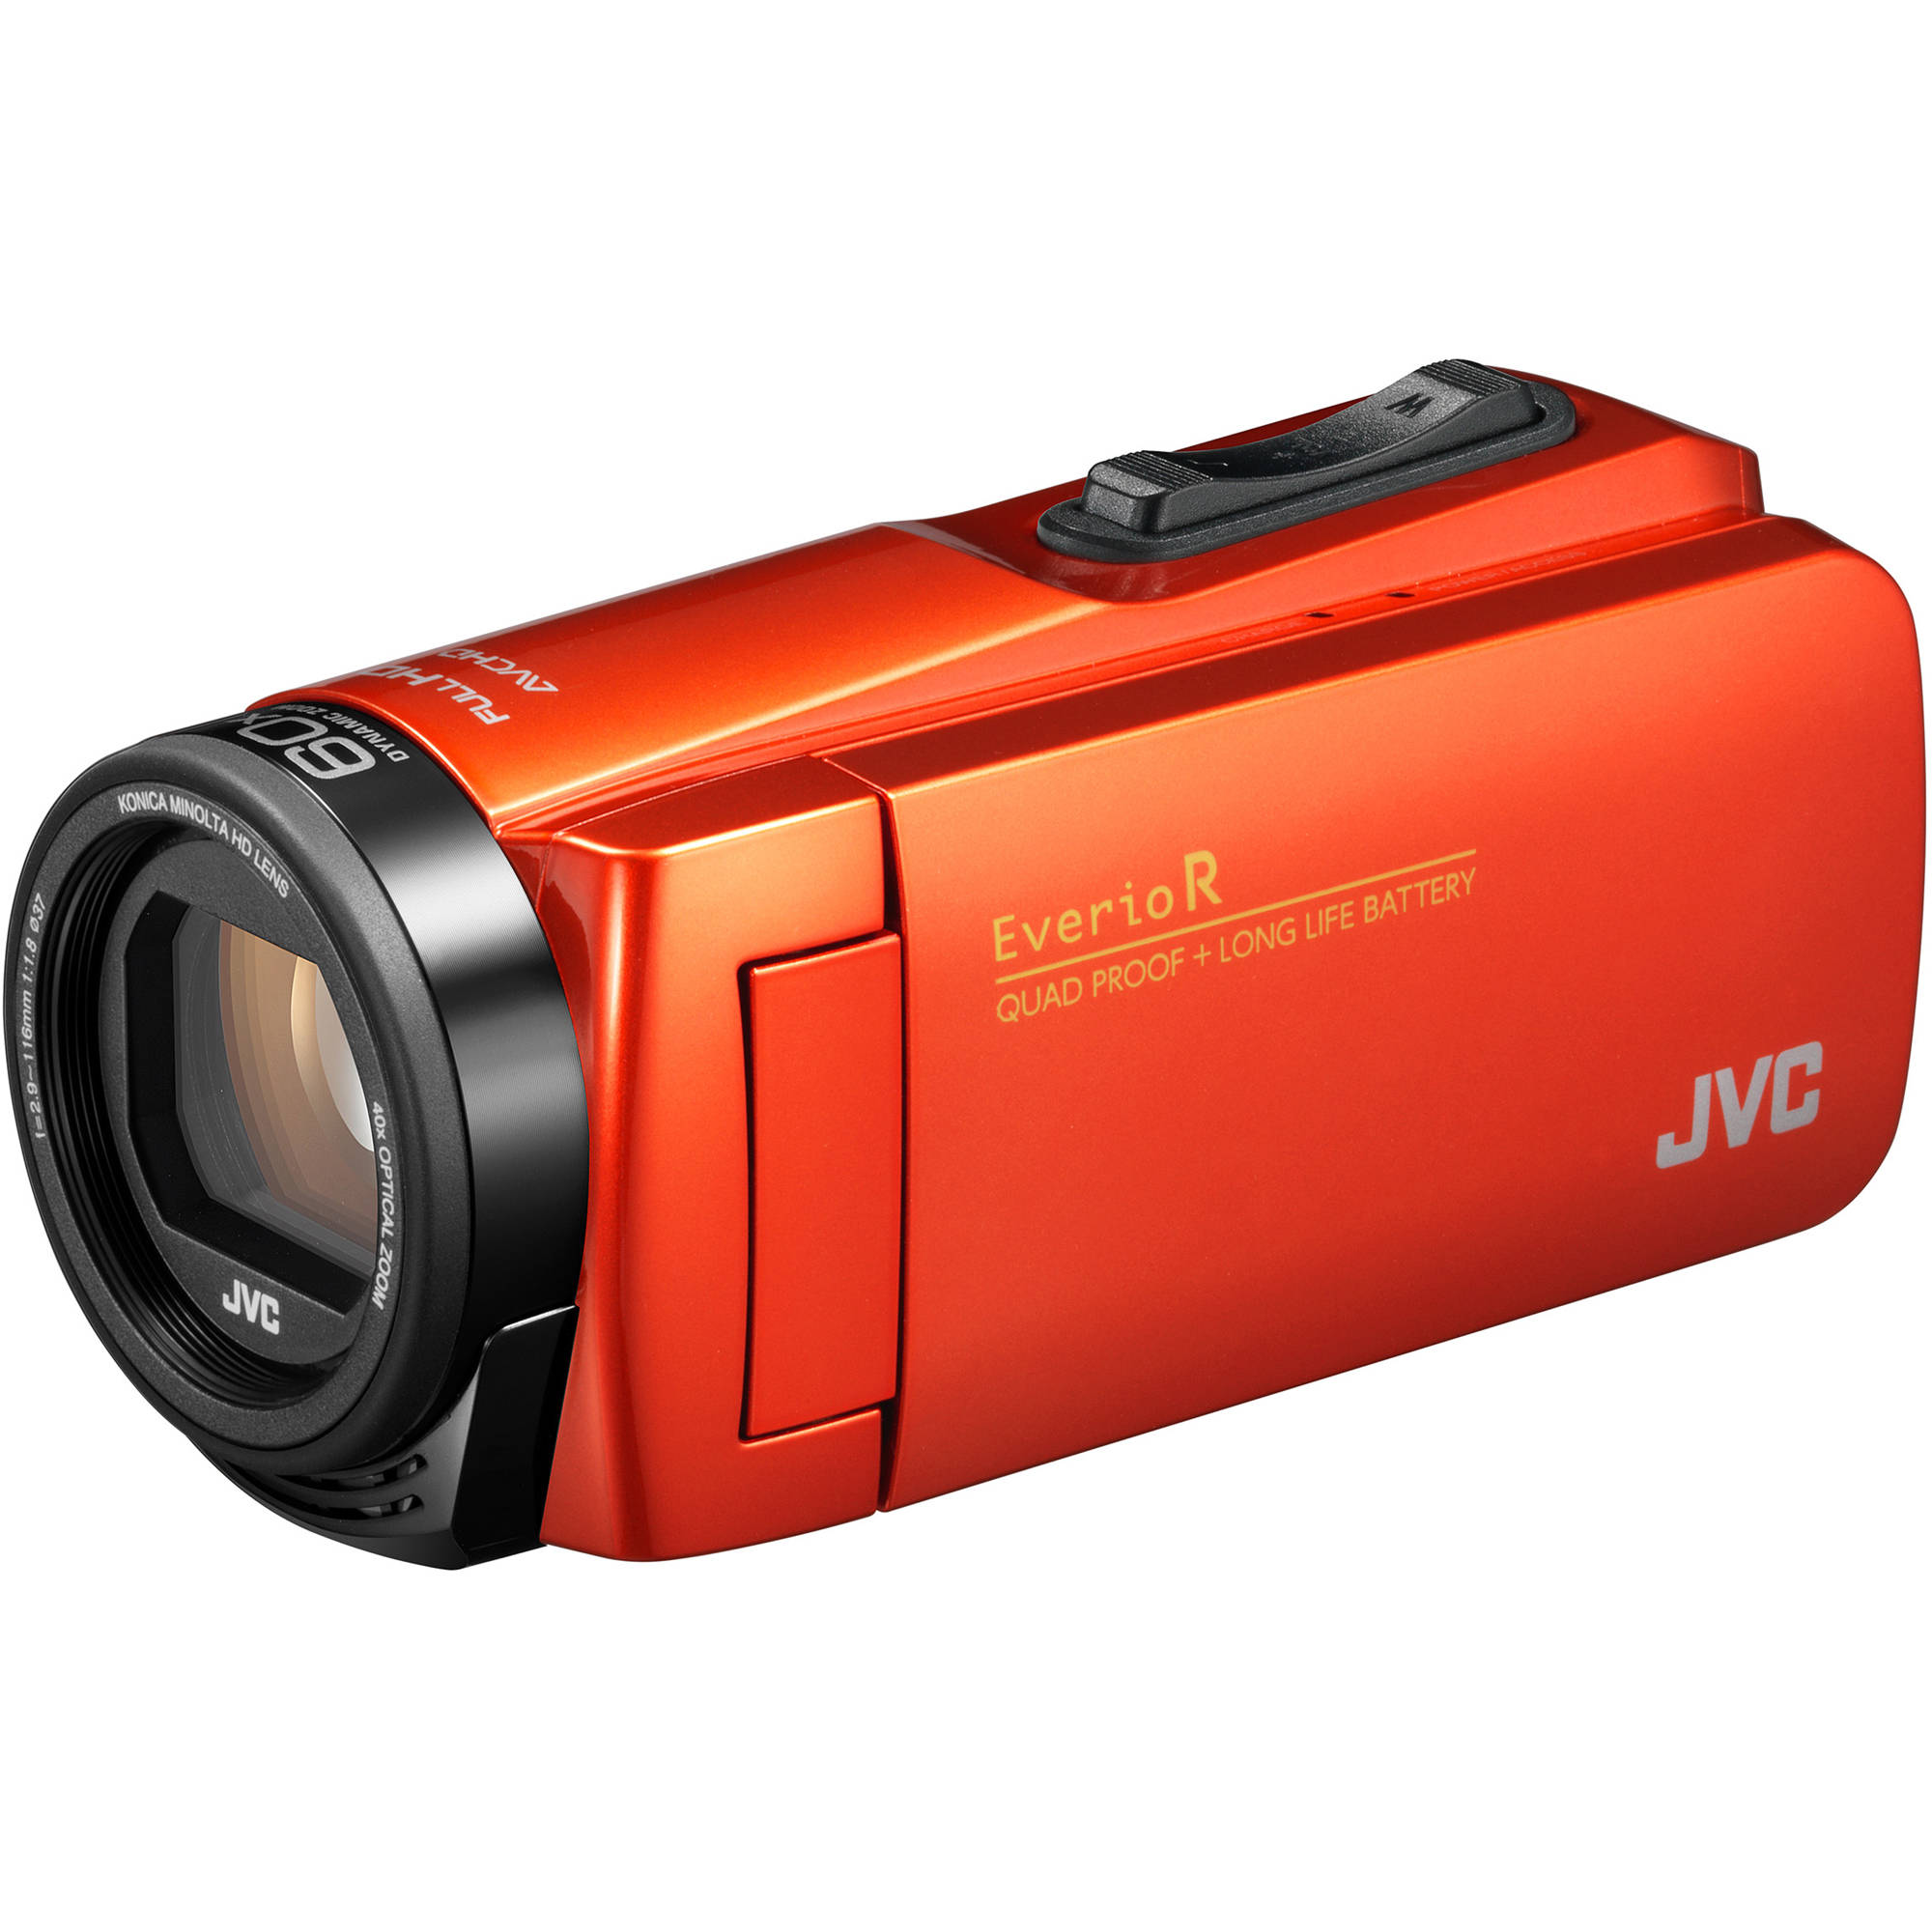 JVC Everio GZ-R460BUS Quad-Proof HD Camcorder with 40x Optical Zoom (Orange